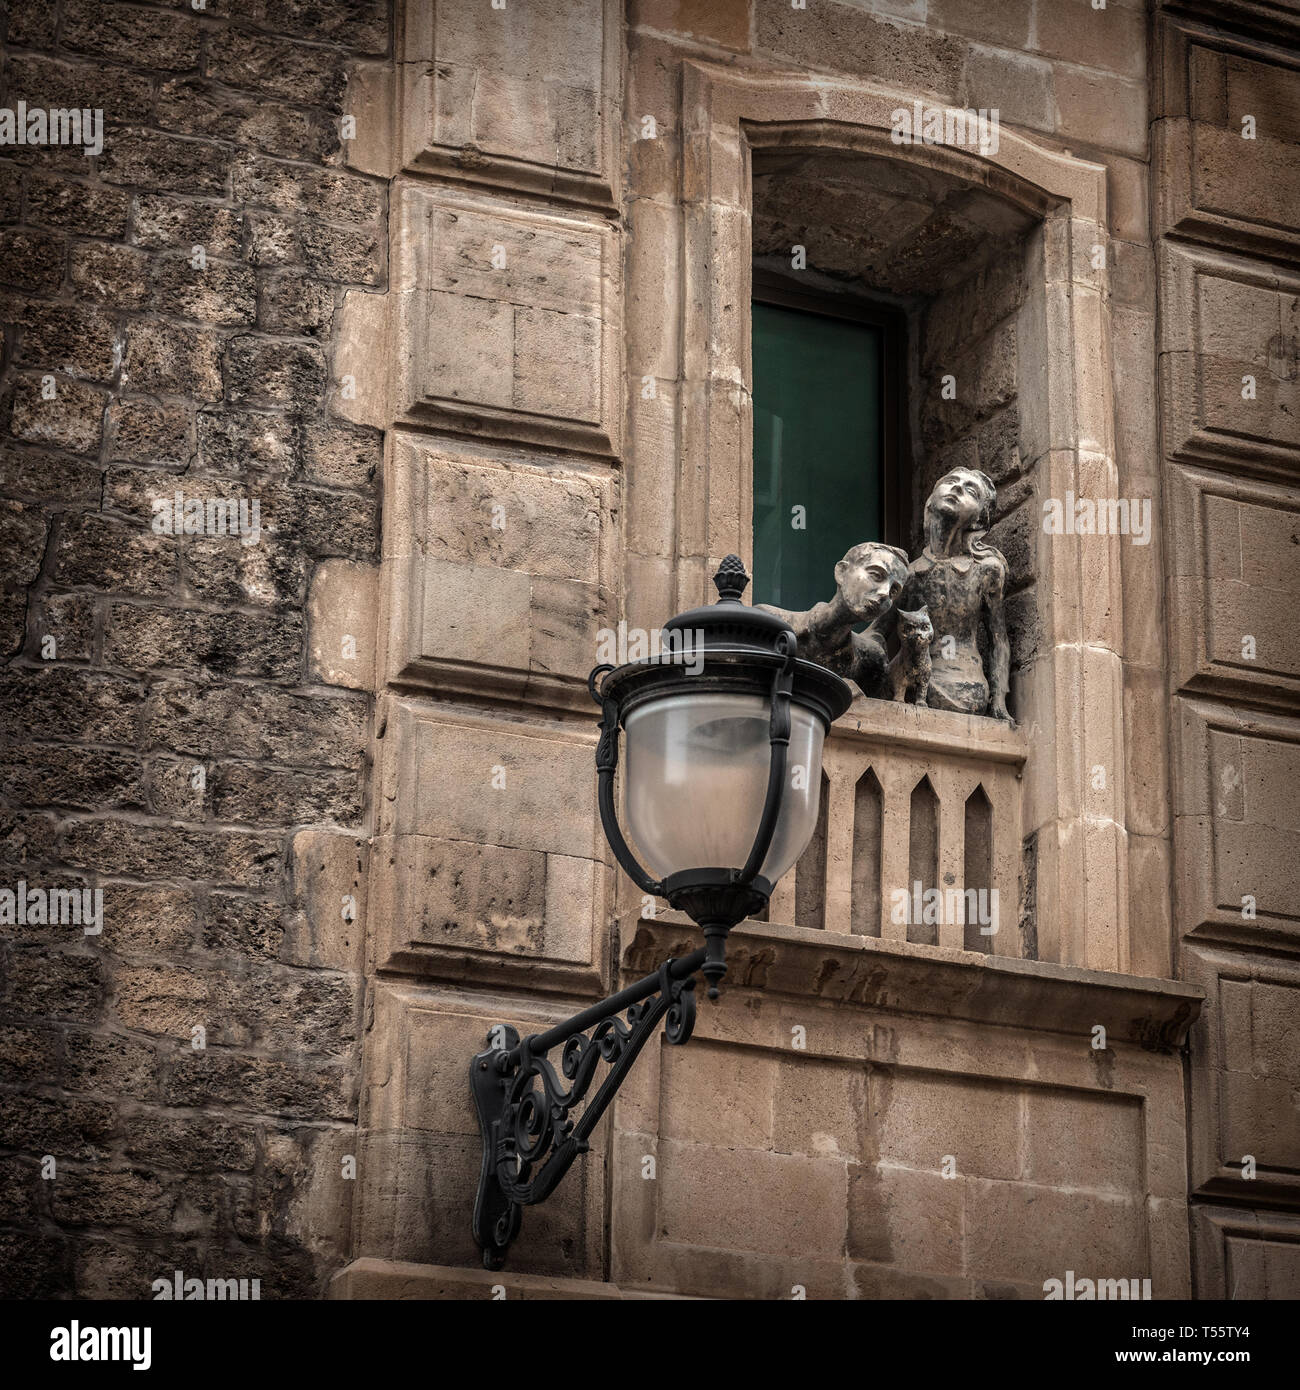 Stone figures of people in the window - Stock Image